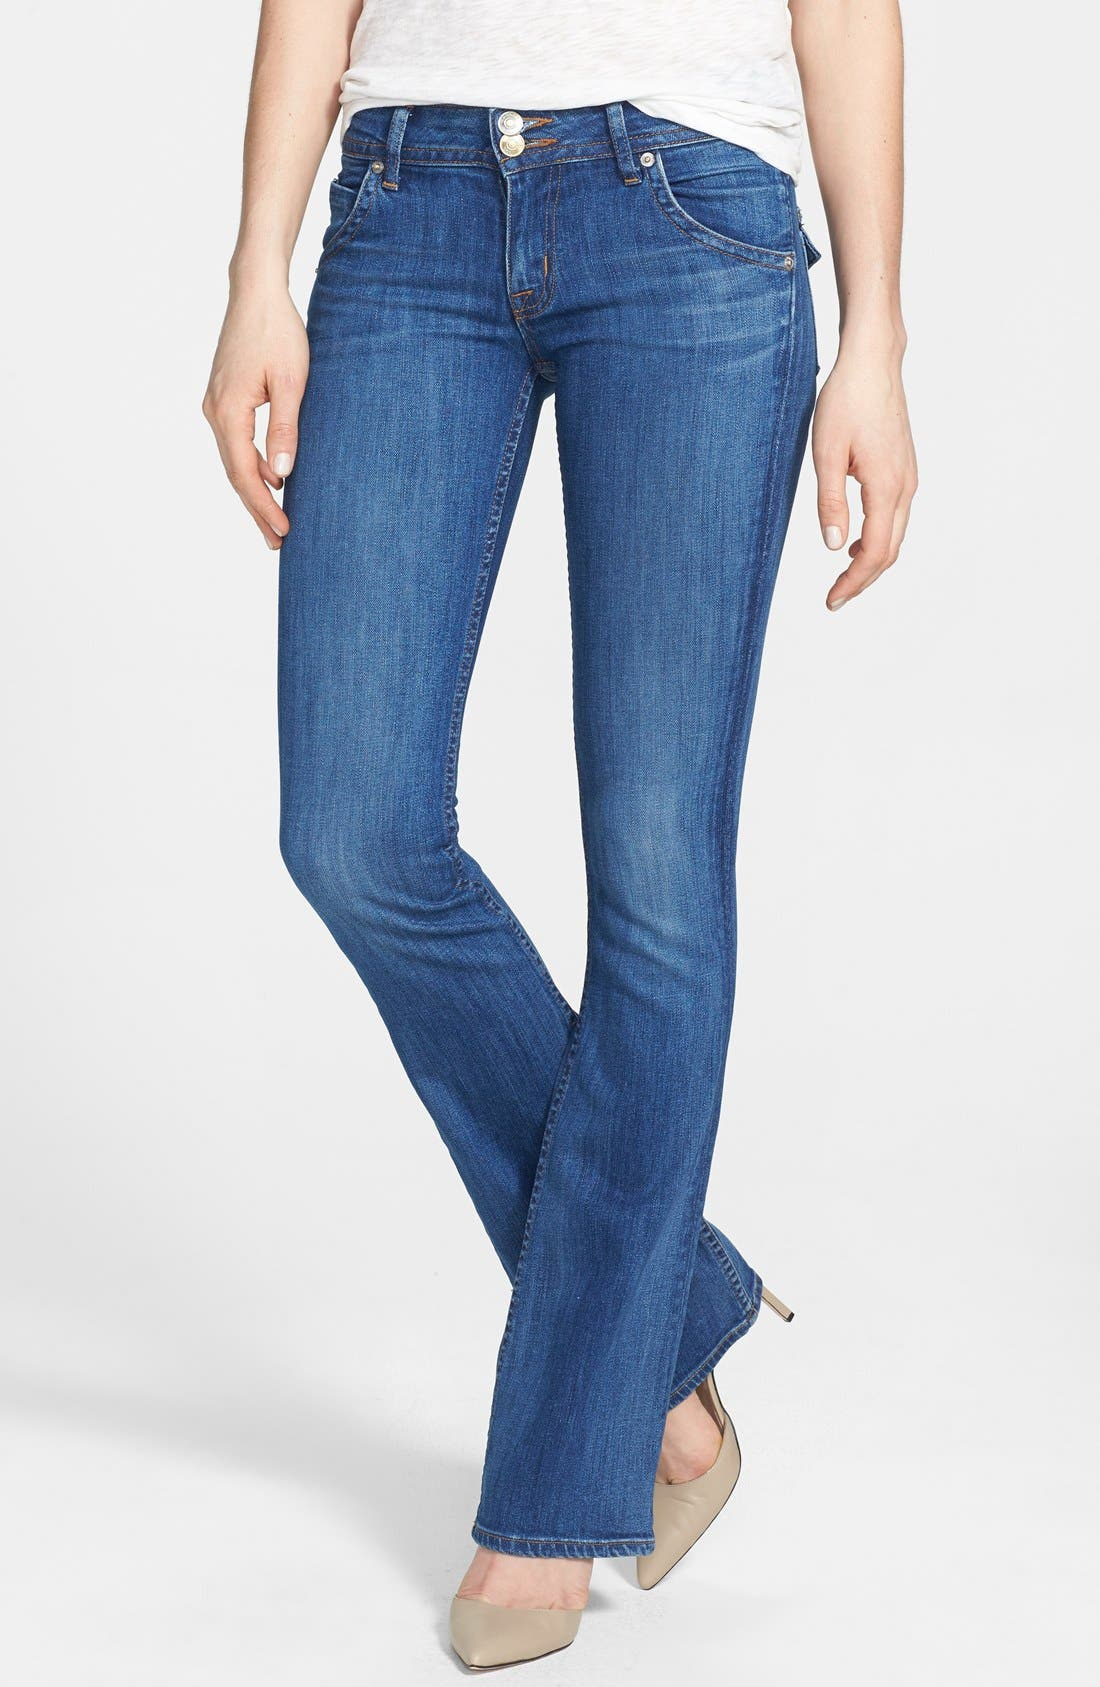 Alternate Image 1 Selected - Hudson Jeans Signature Bootcut Jeans (Watchtower)